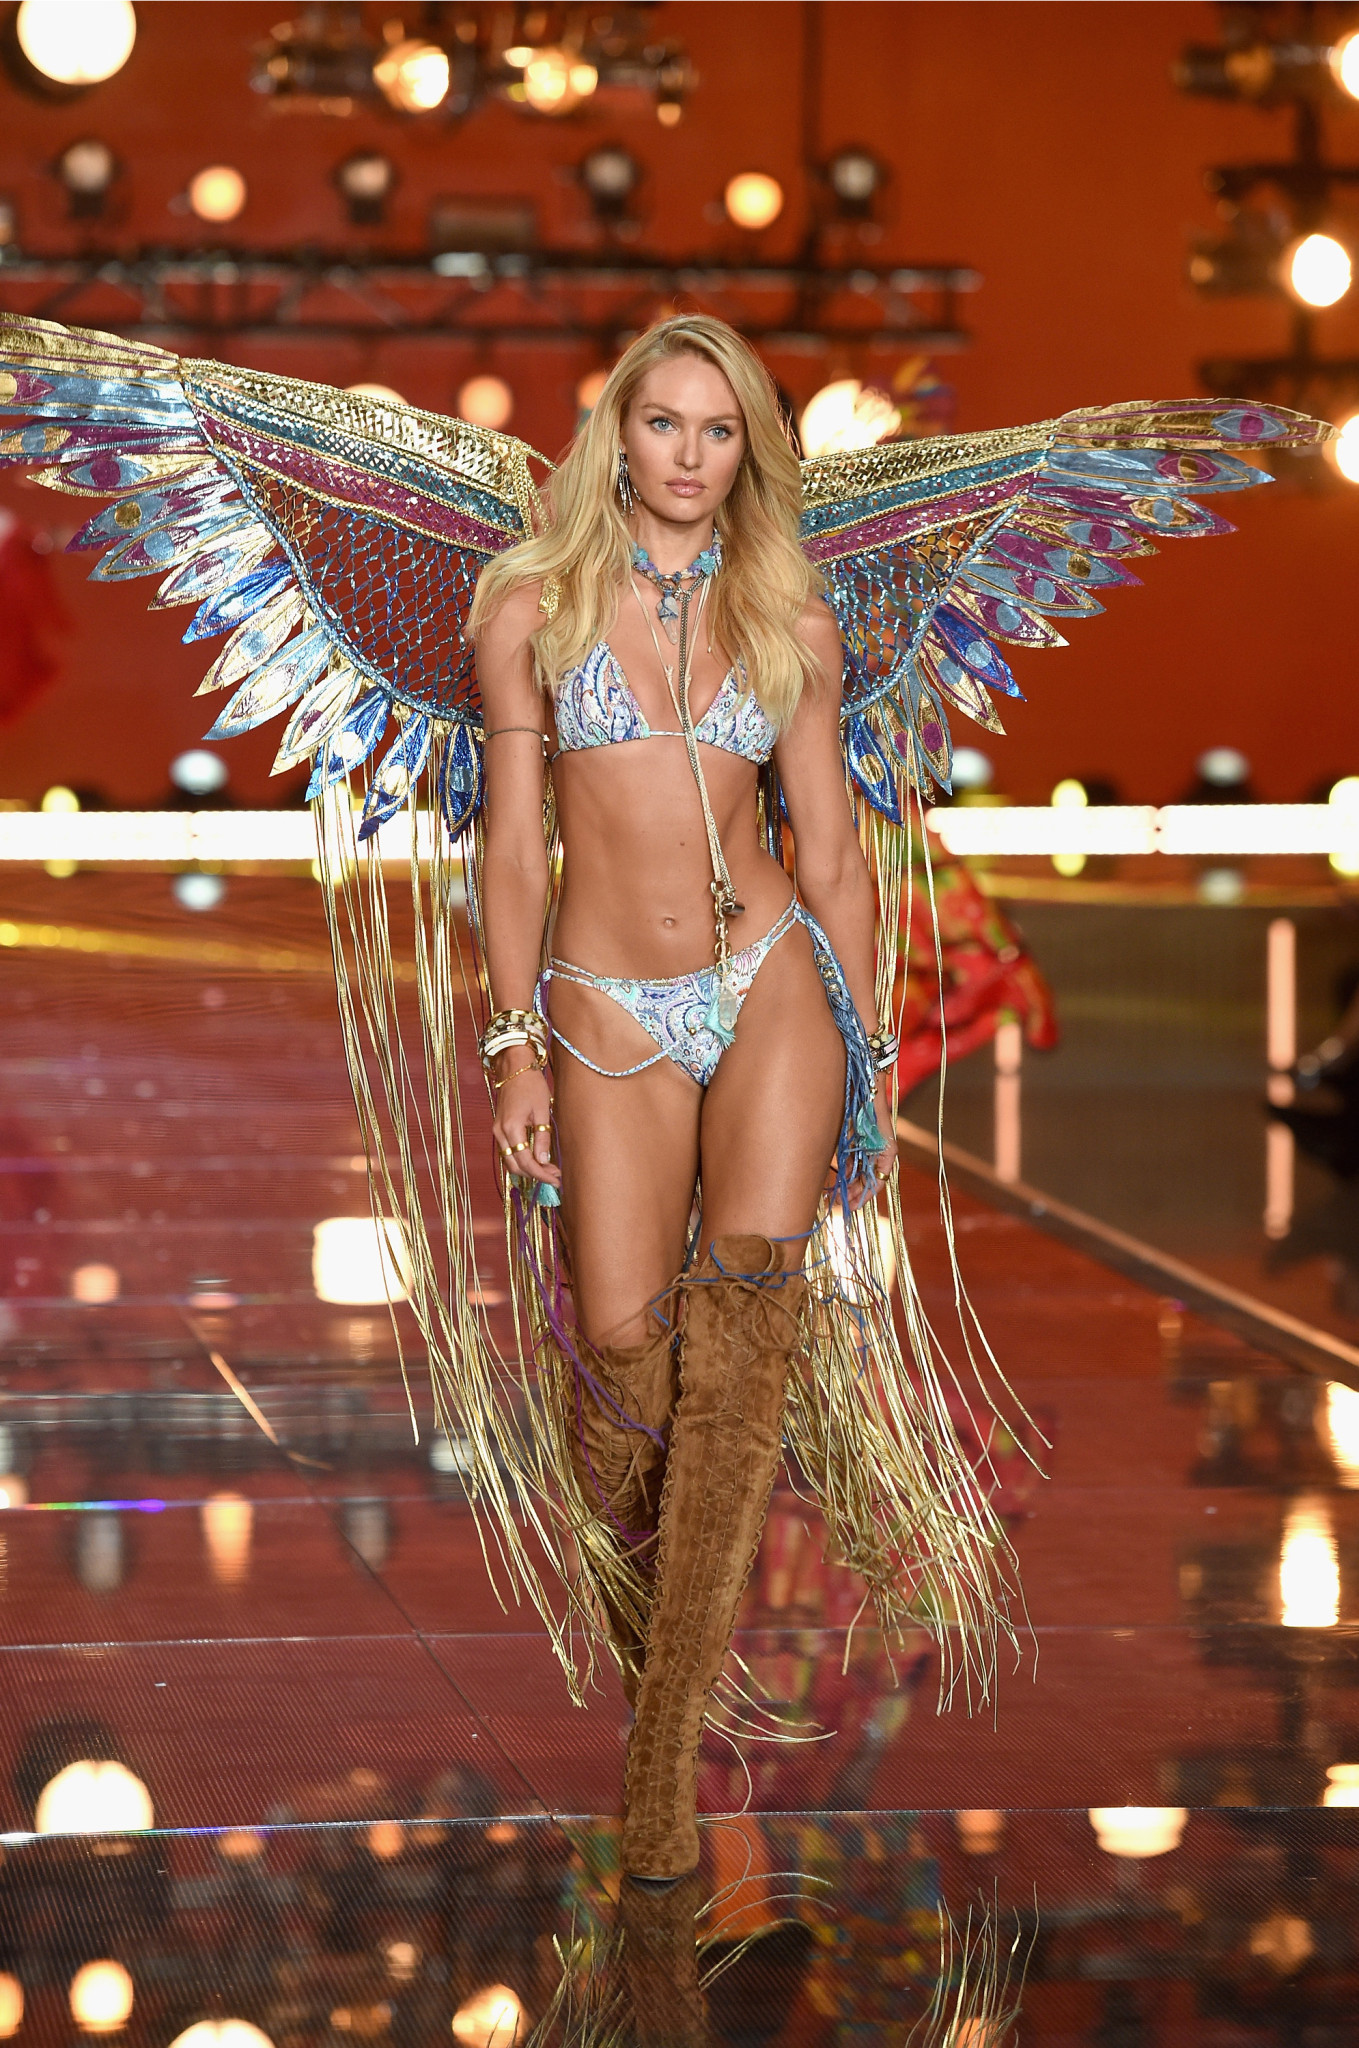 fashion-show-runway-2015-boho-psychadelic-candice-look-4-victorias-secret-hi-res